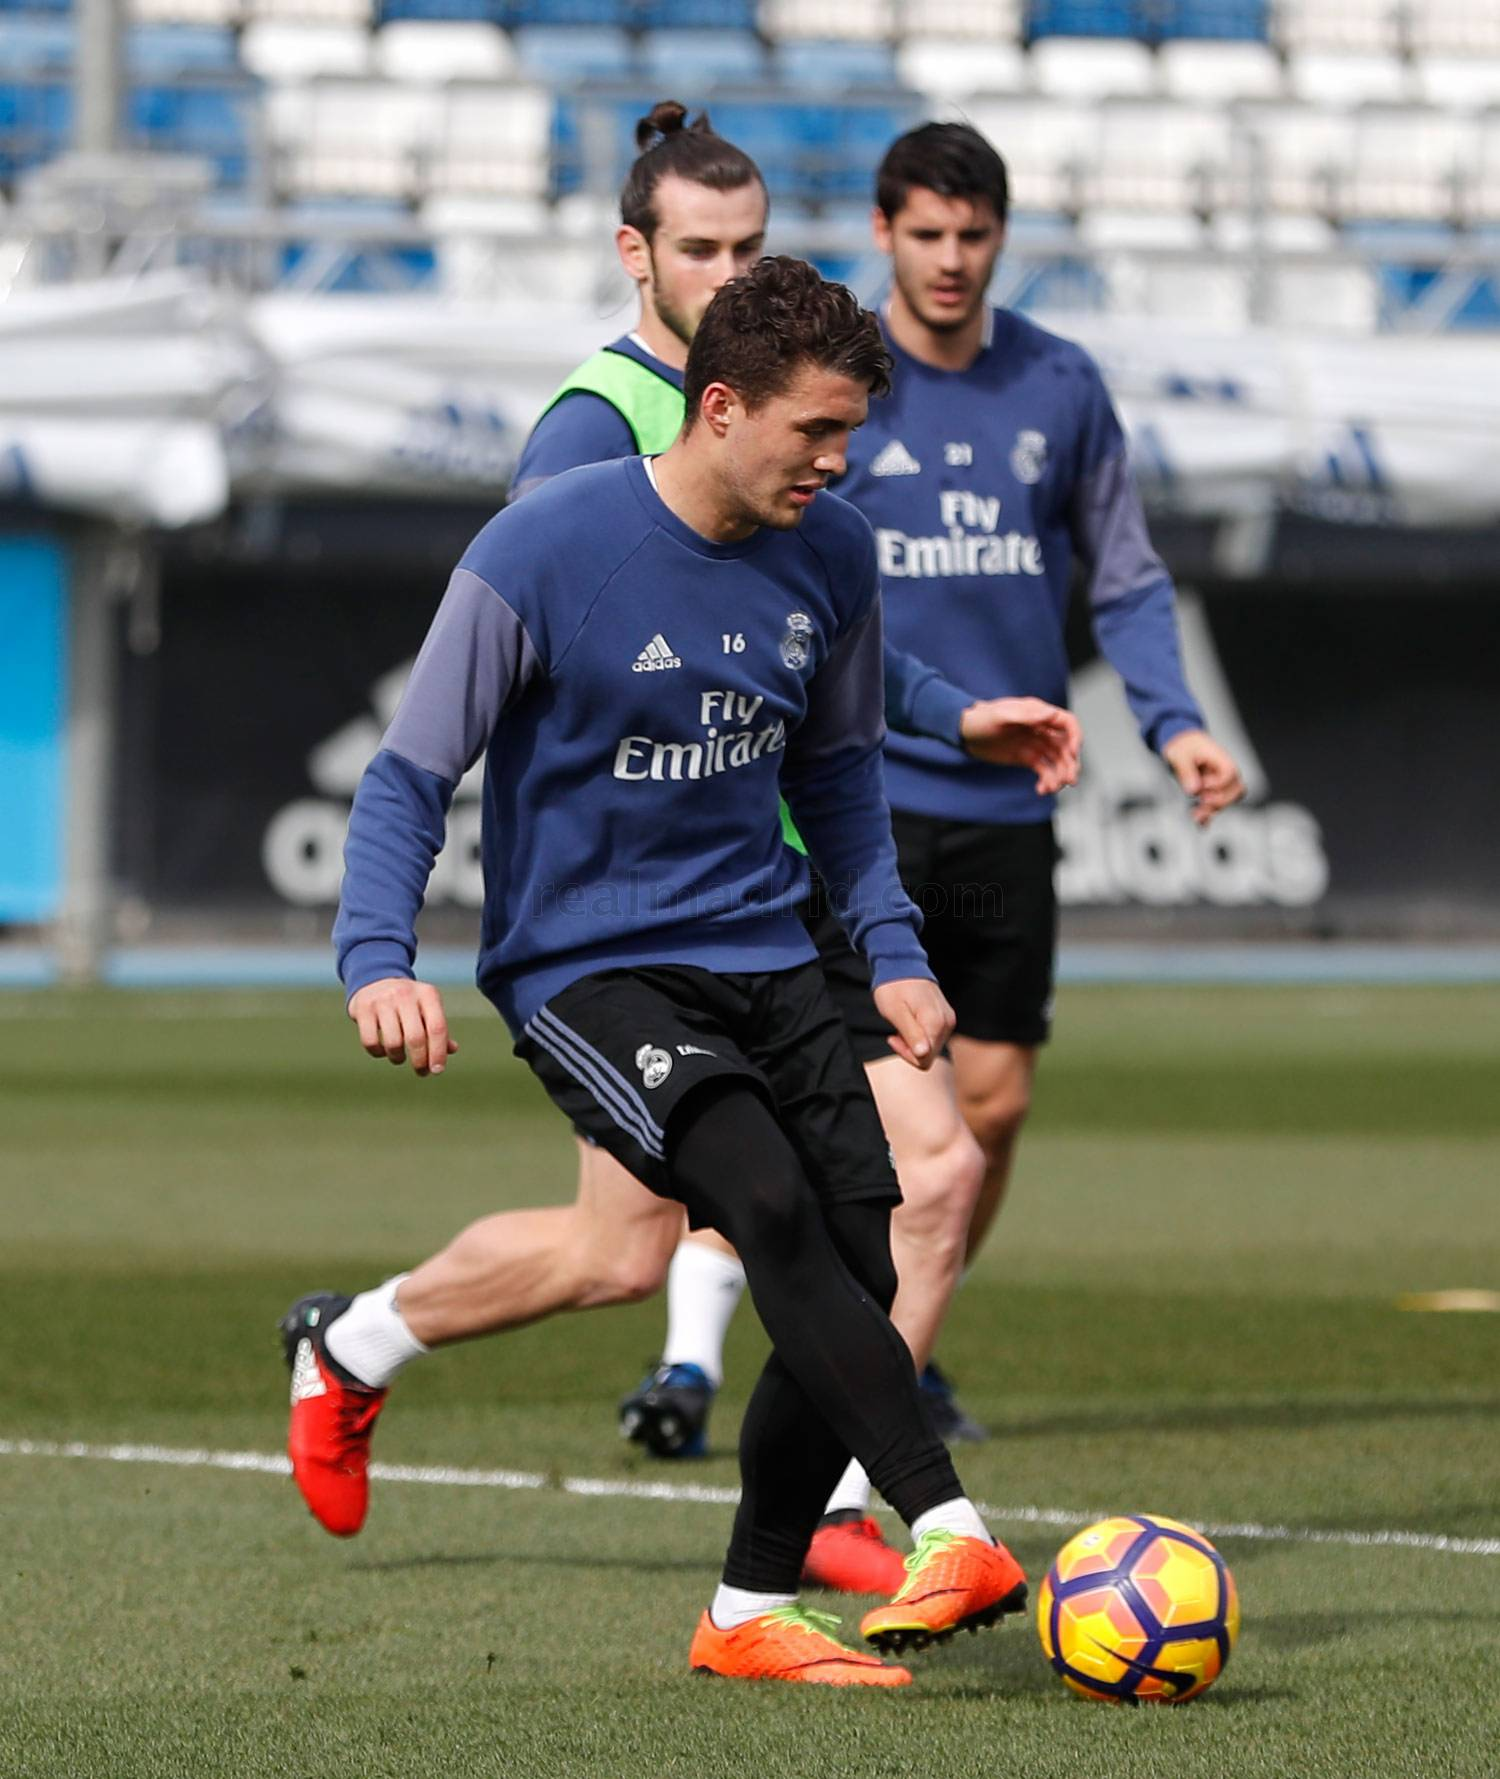 Real Madrid - Entrenamiento del Real Madrid - 24-02-2017